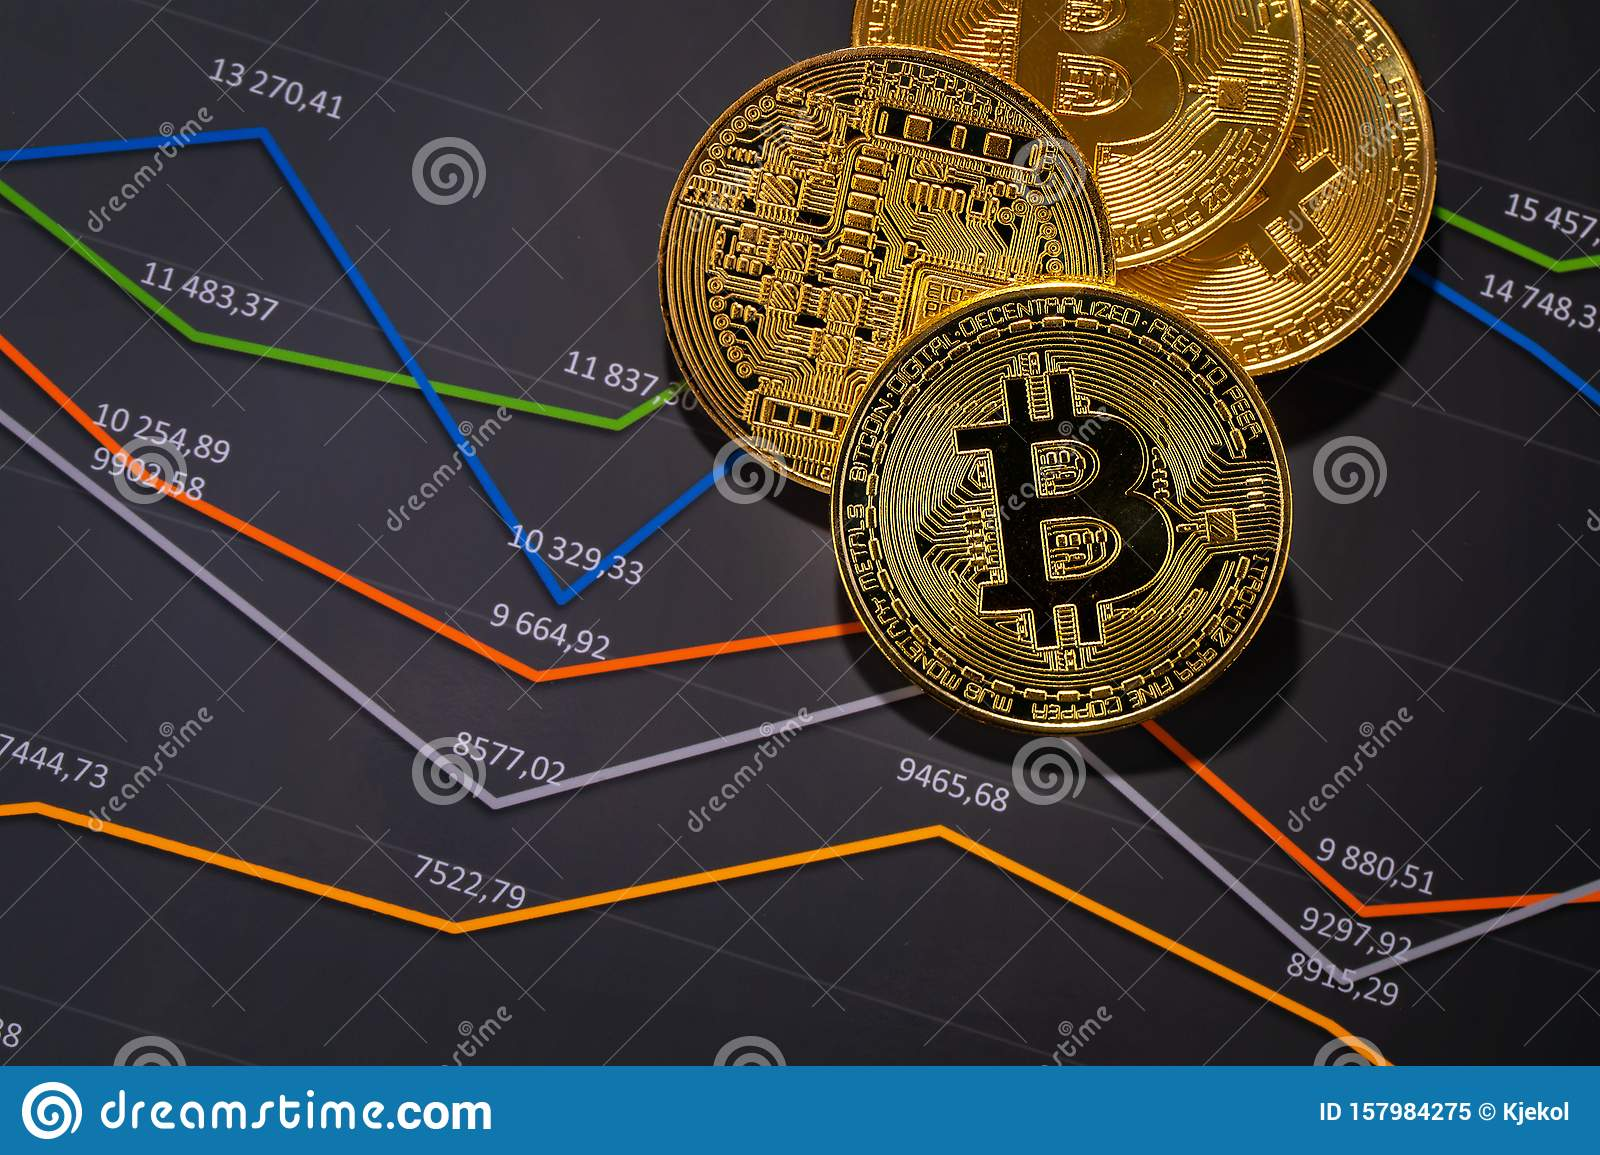 Gold Bitcoin On Financial Charts For Cryptocurrency Prices Stock Image - Image of charts, gold ...